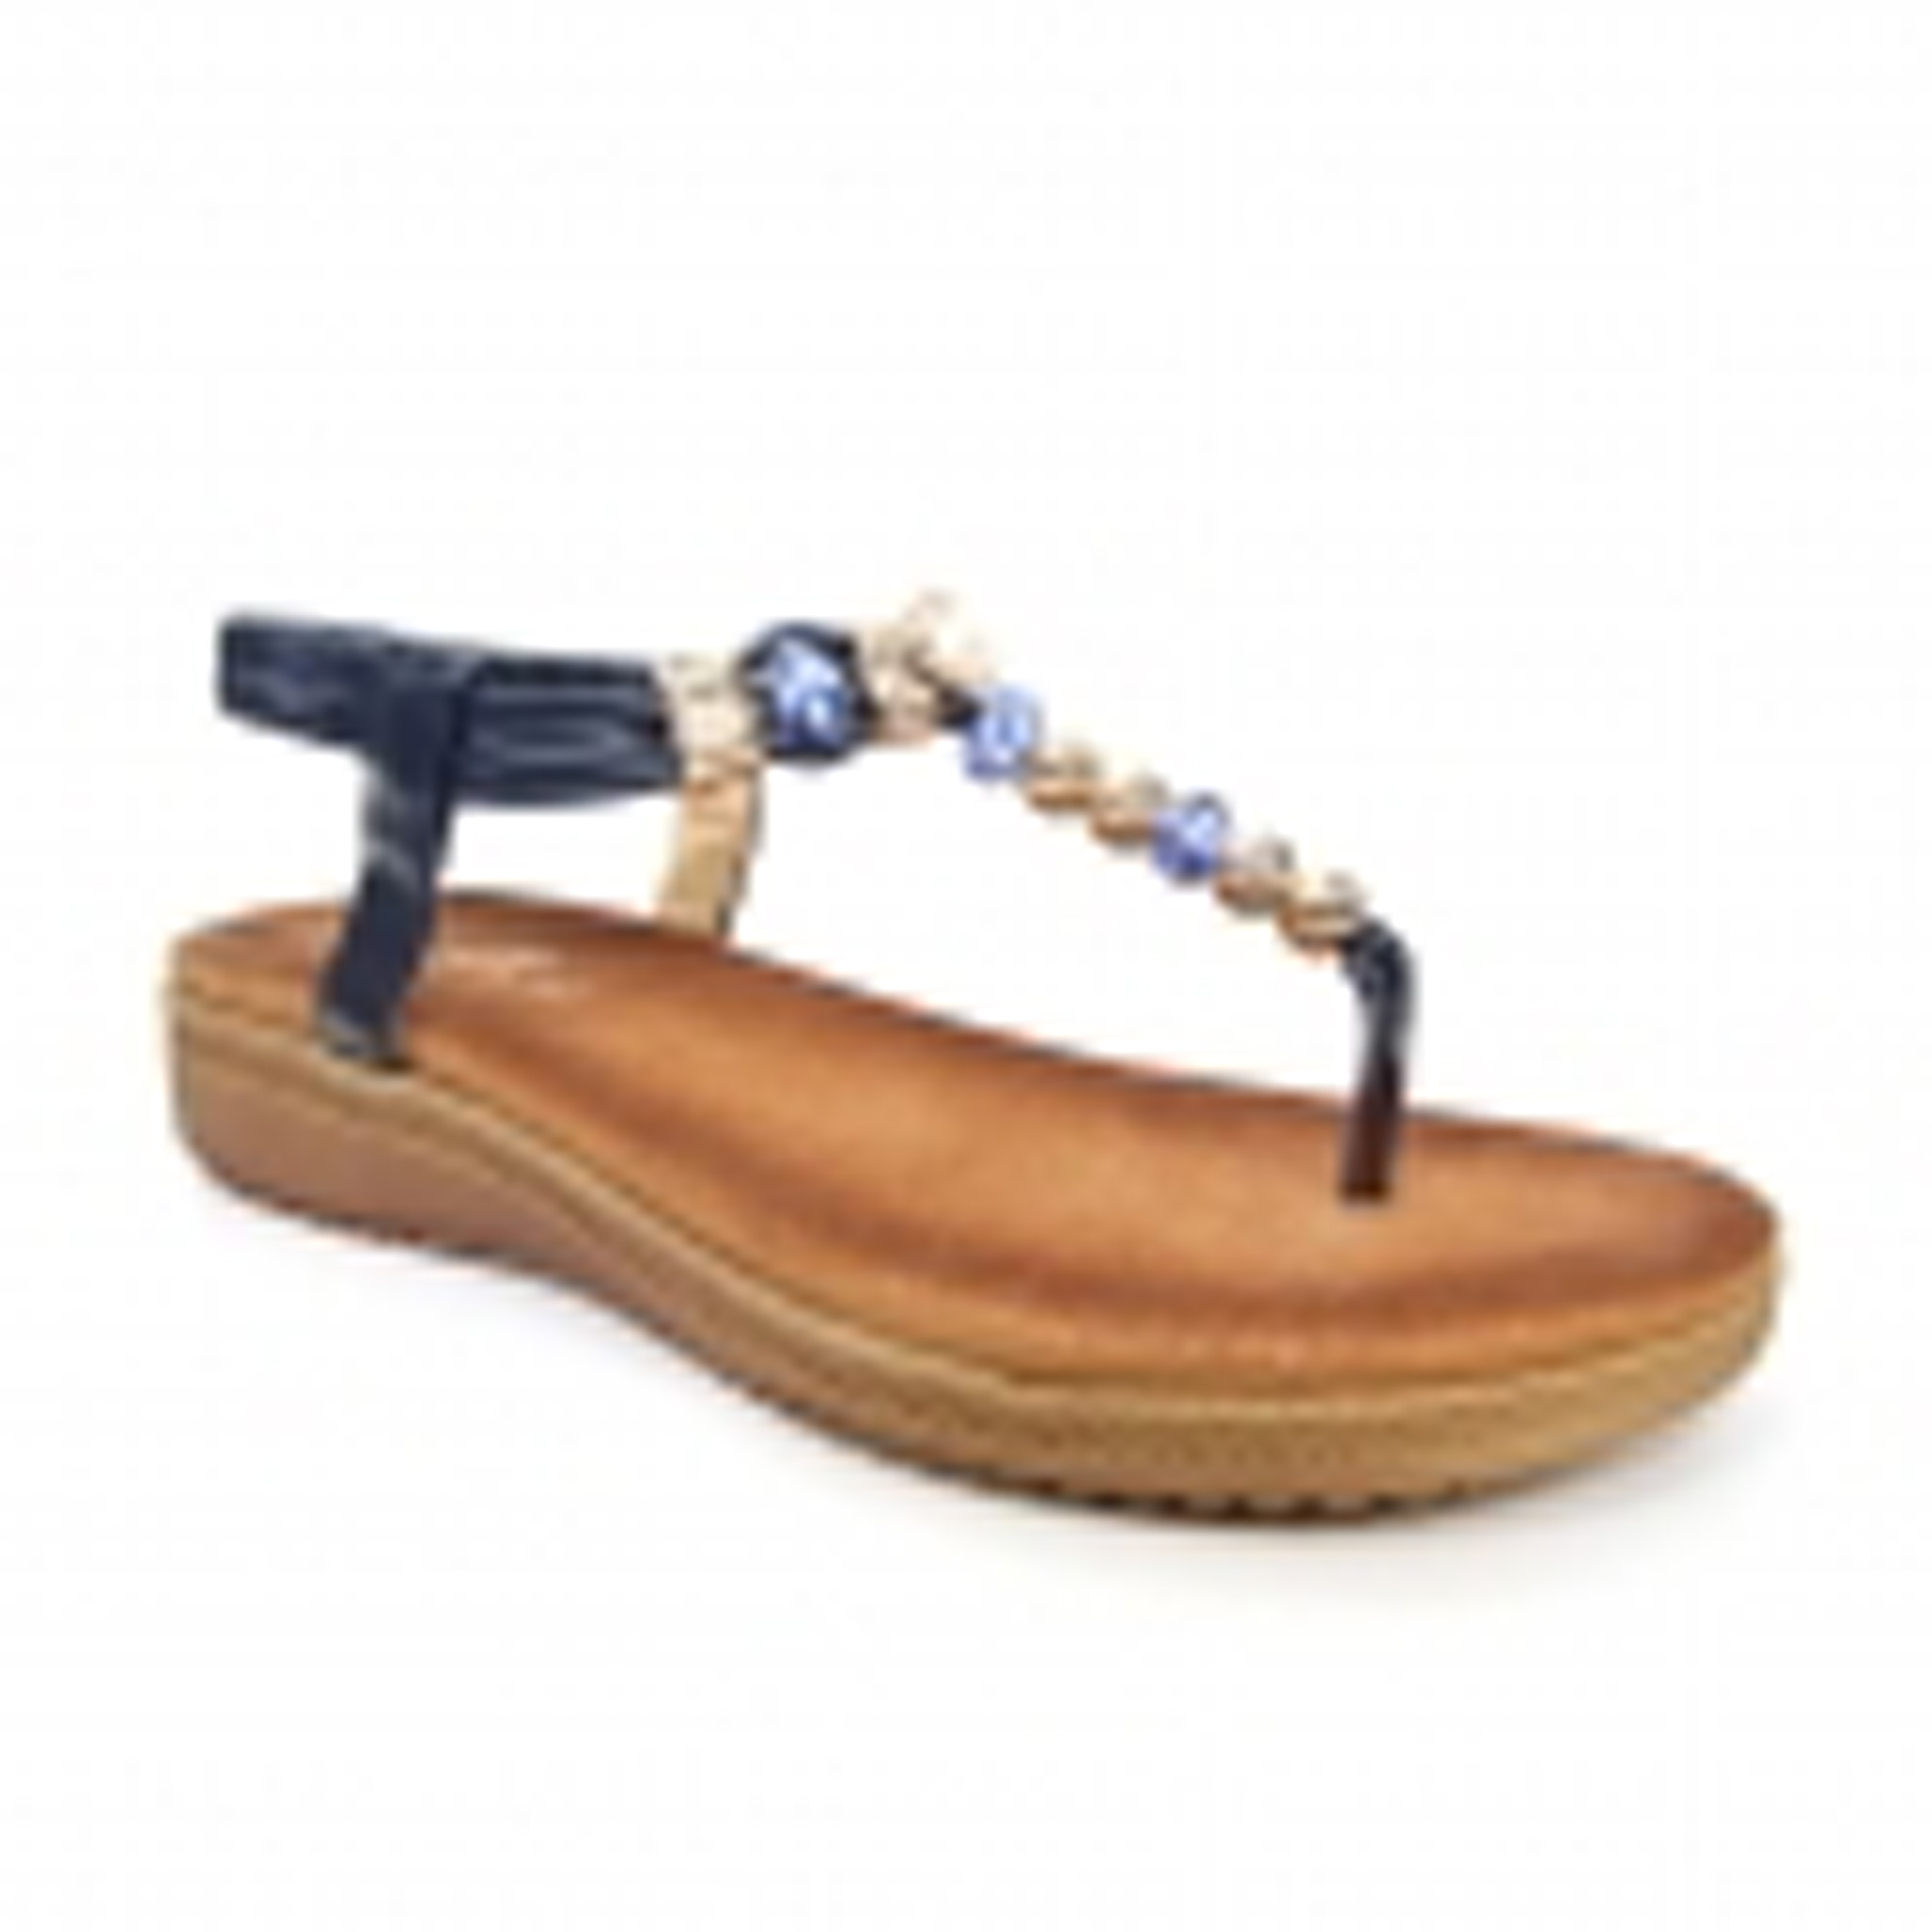 acorn-glitzy-toe-post-sandal-p3097-25300